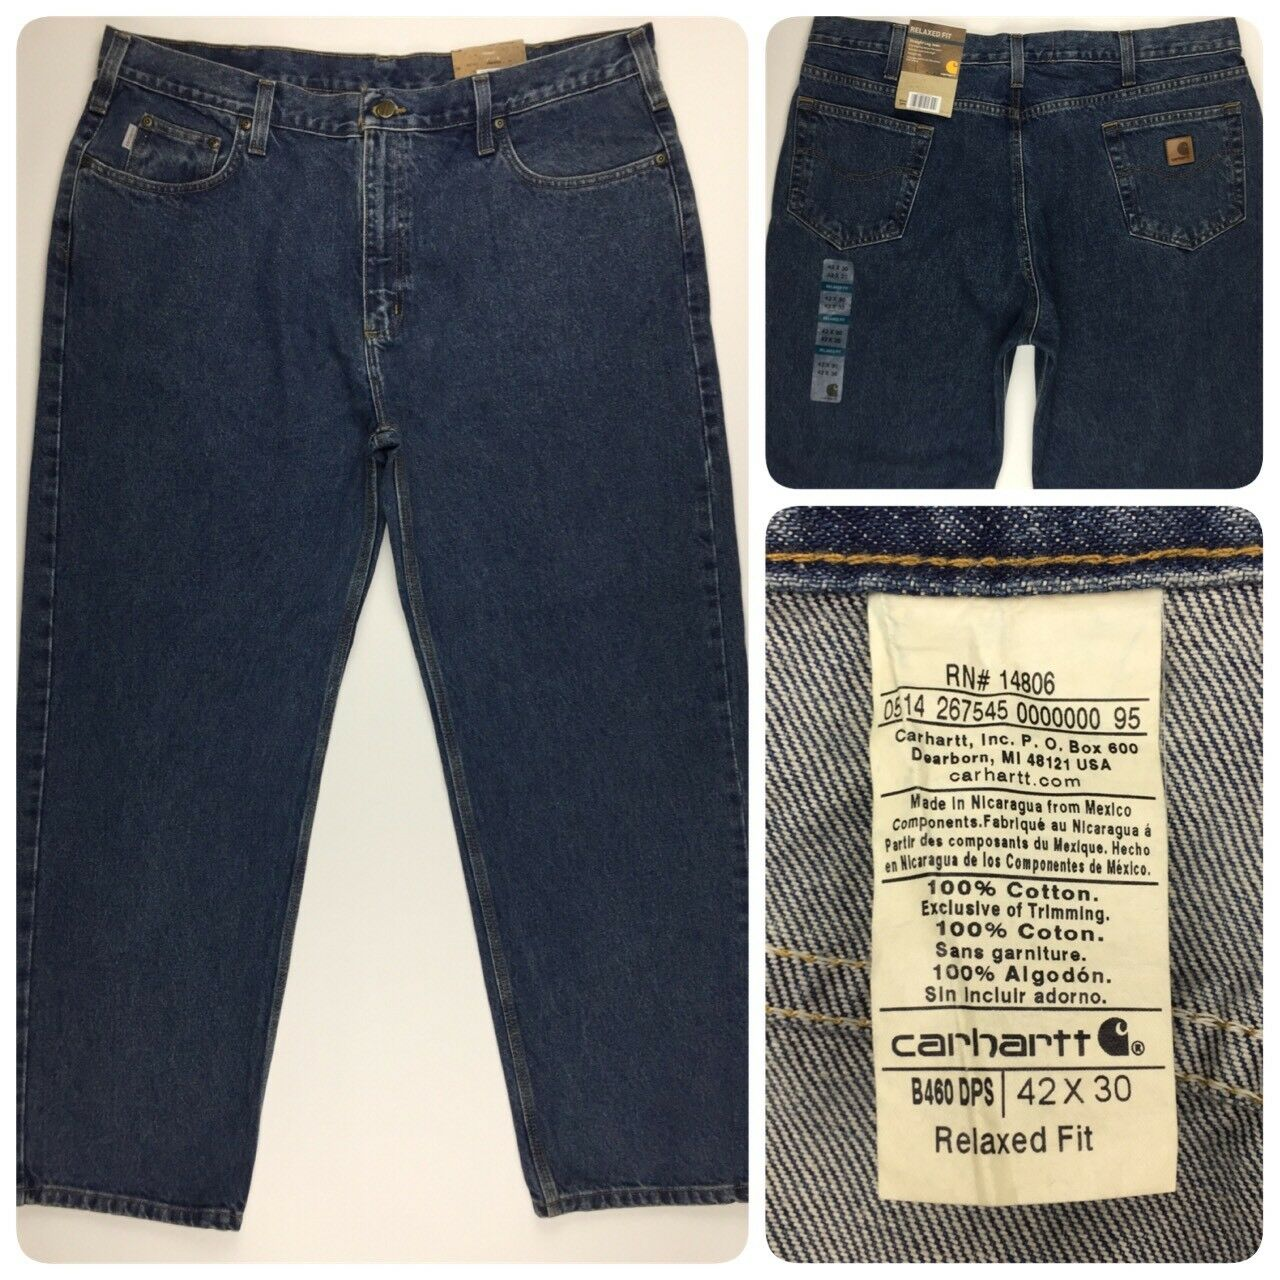 NEW  Carhartt Mens Relaxed Fit Straight Leg Jeans 42x30 B460 DPS 100% Cotton NWT